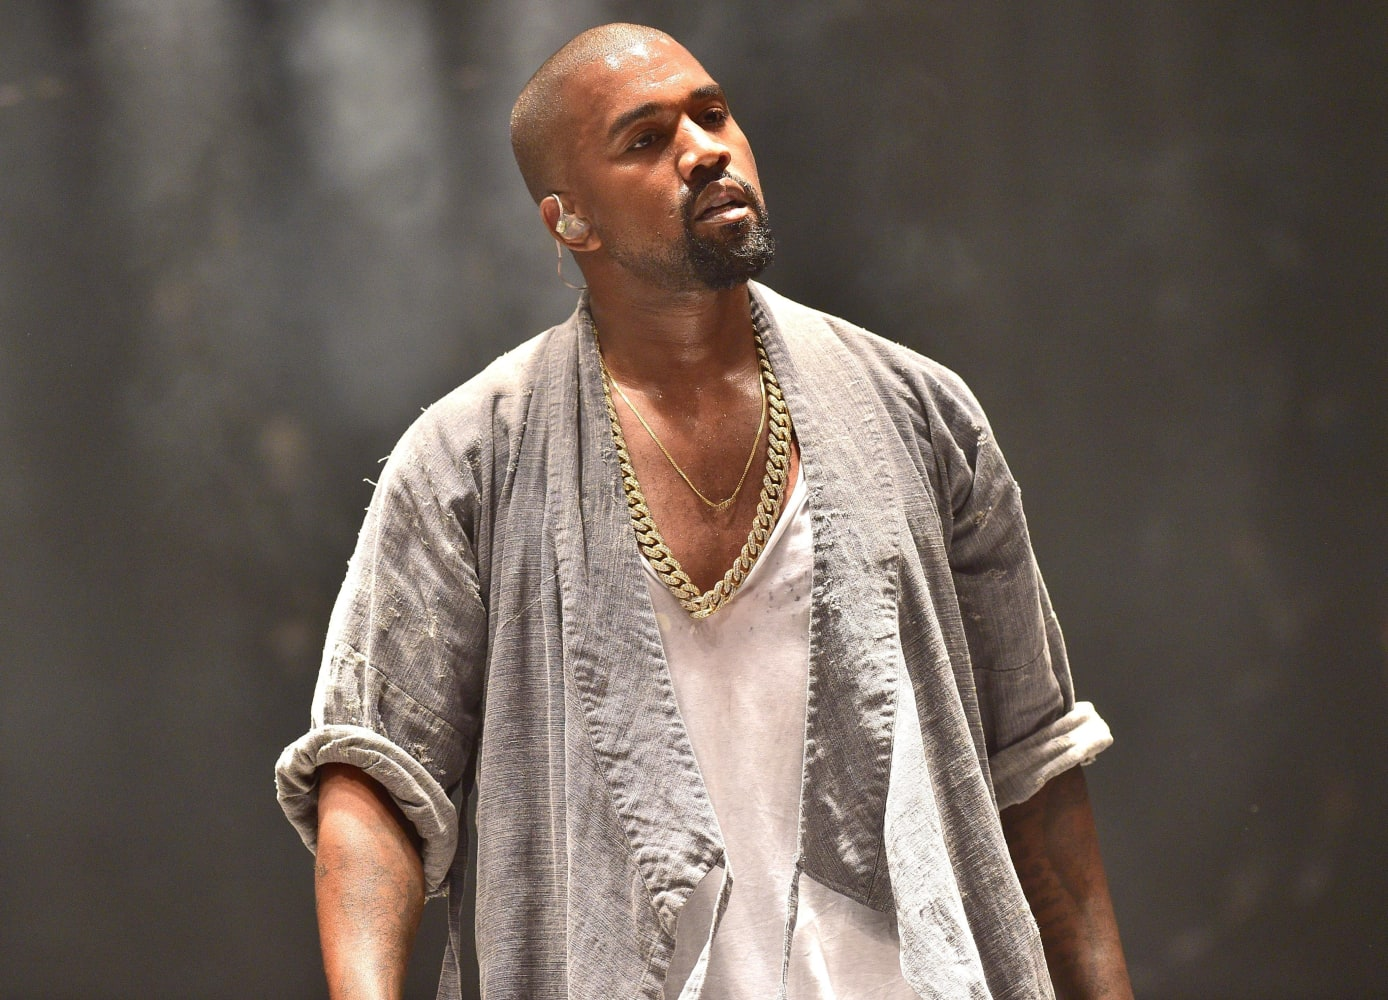 Kanye West's Family And Friends Are Reportedly Concerned About Him